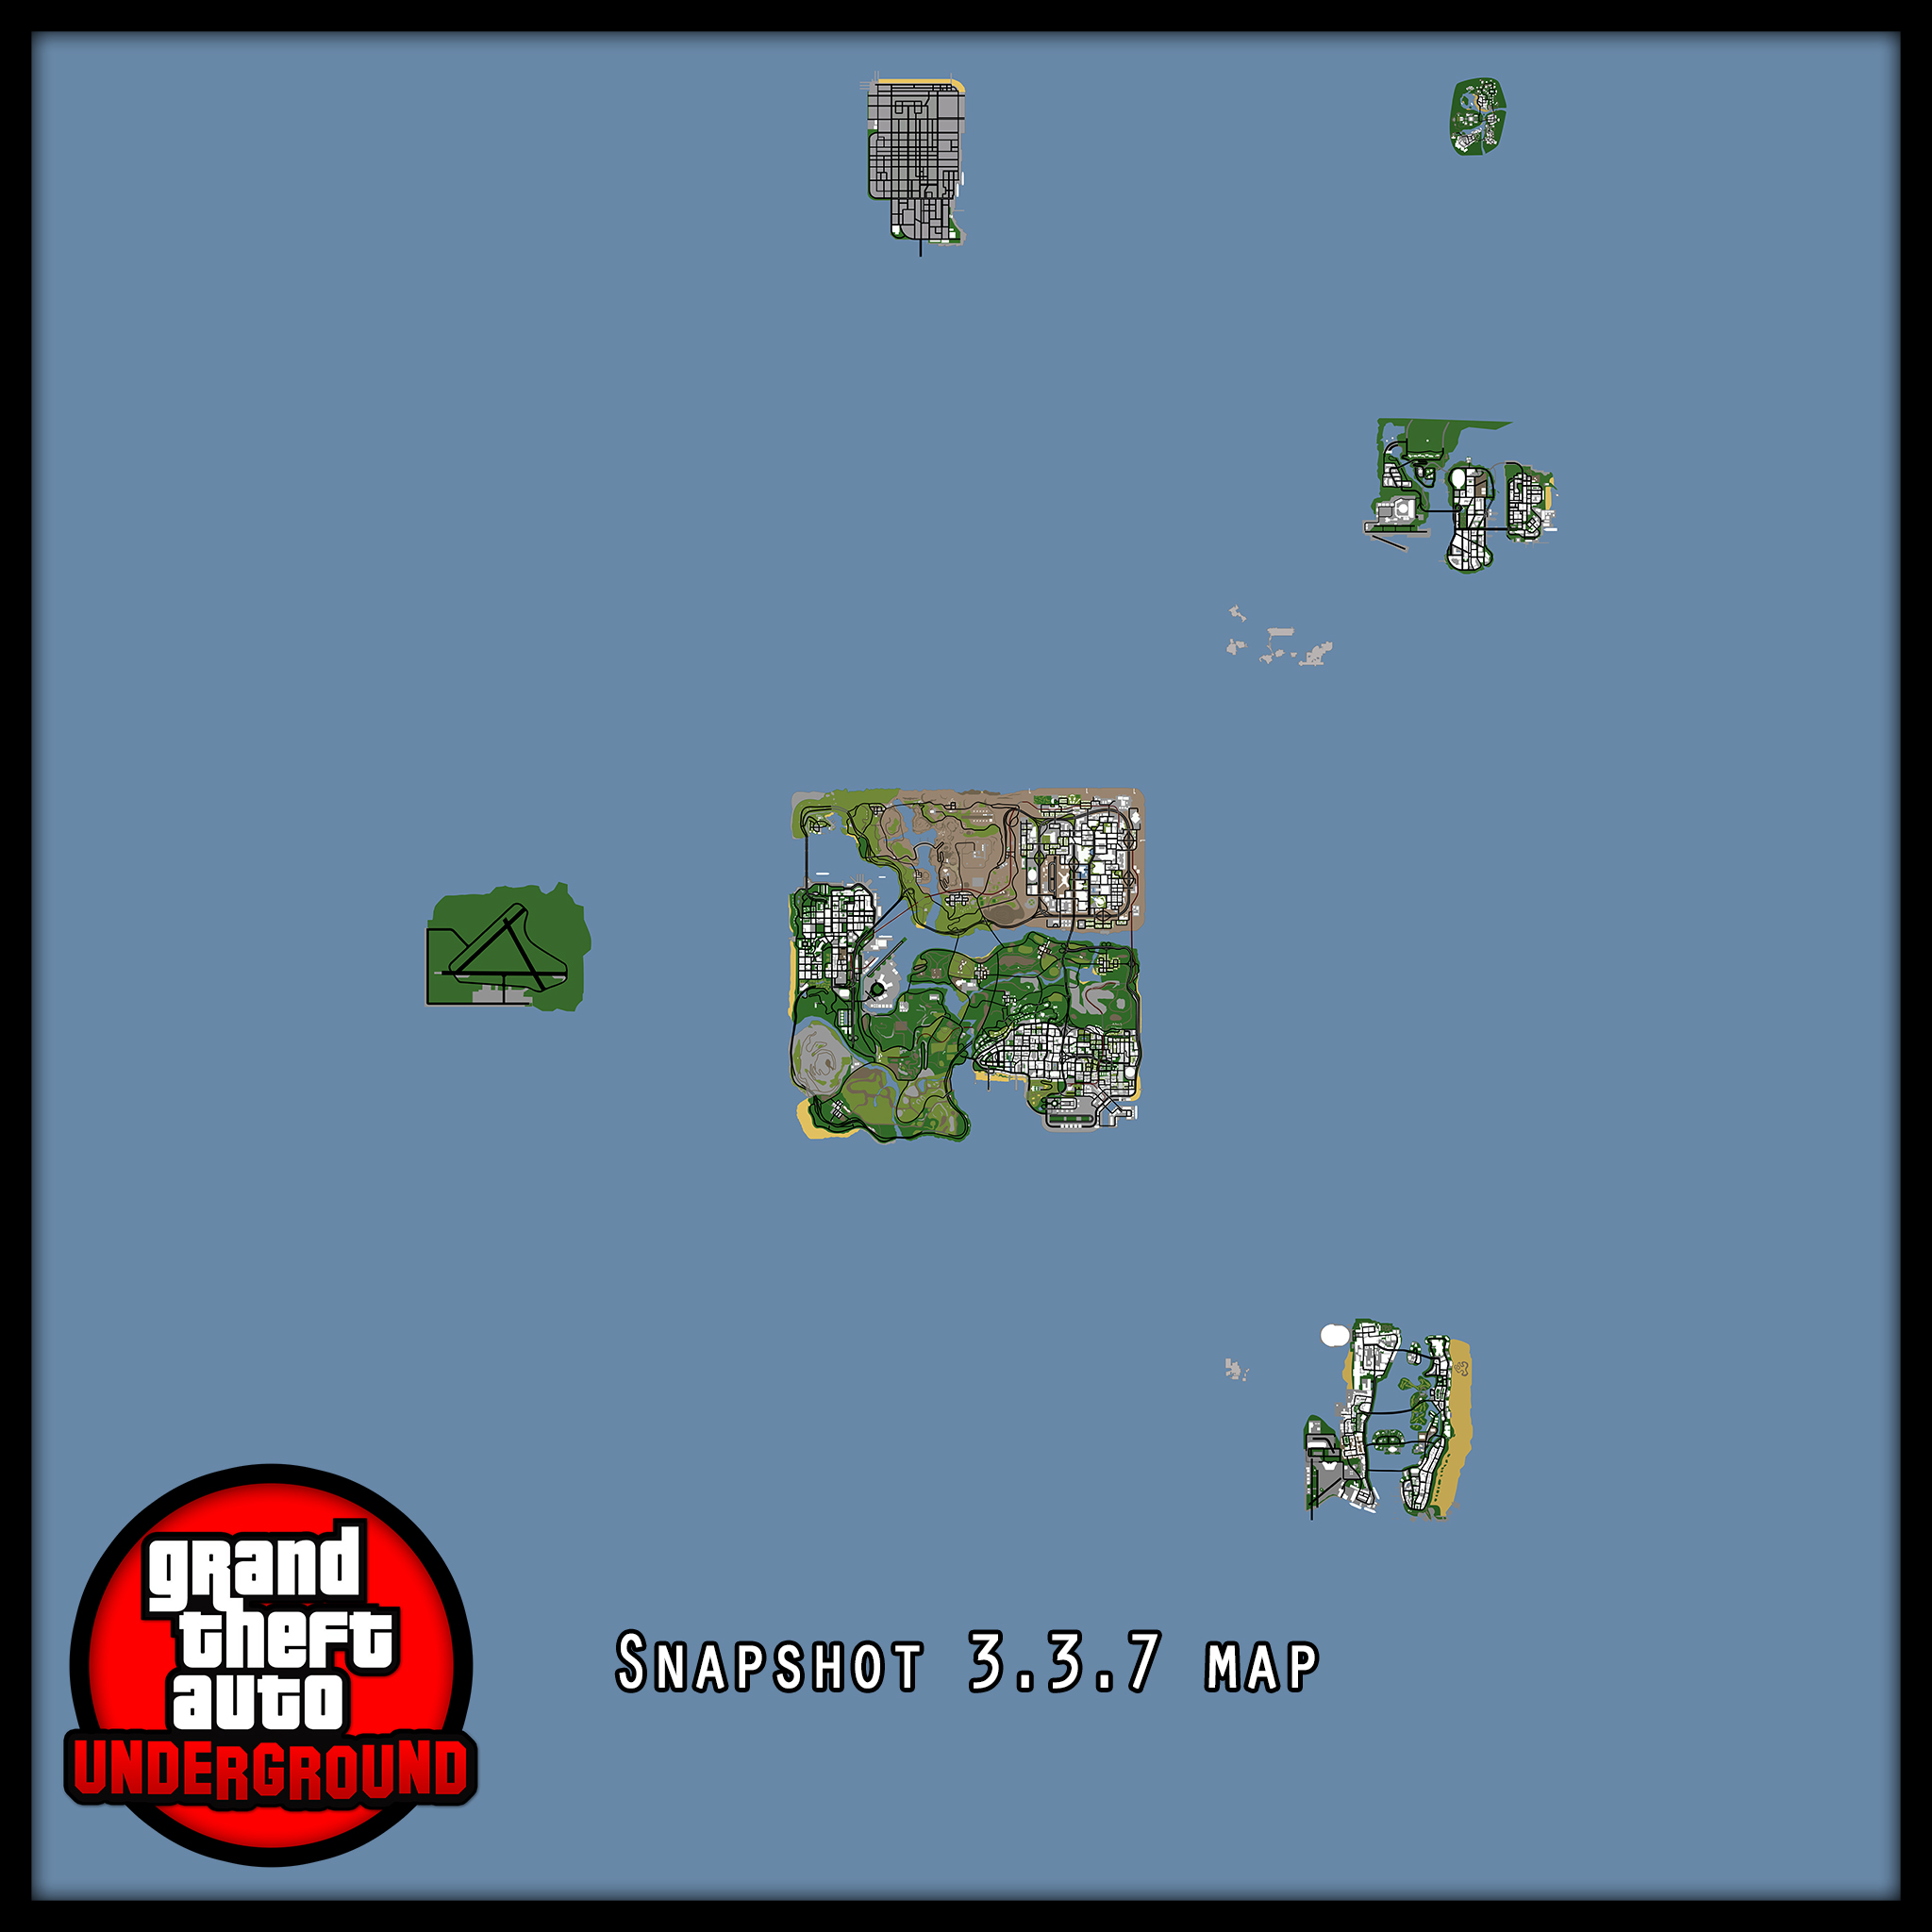 Bajar Subway Map De Ny.Gta Underground Mod For Grand Theft Auto San Andreas Mod Db